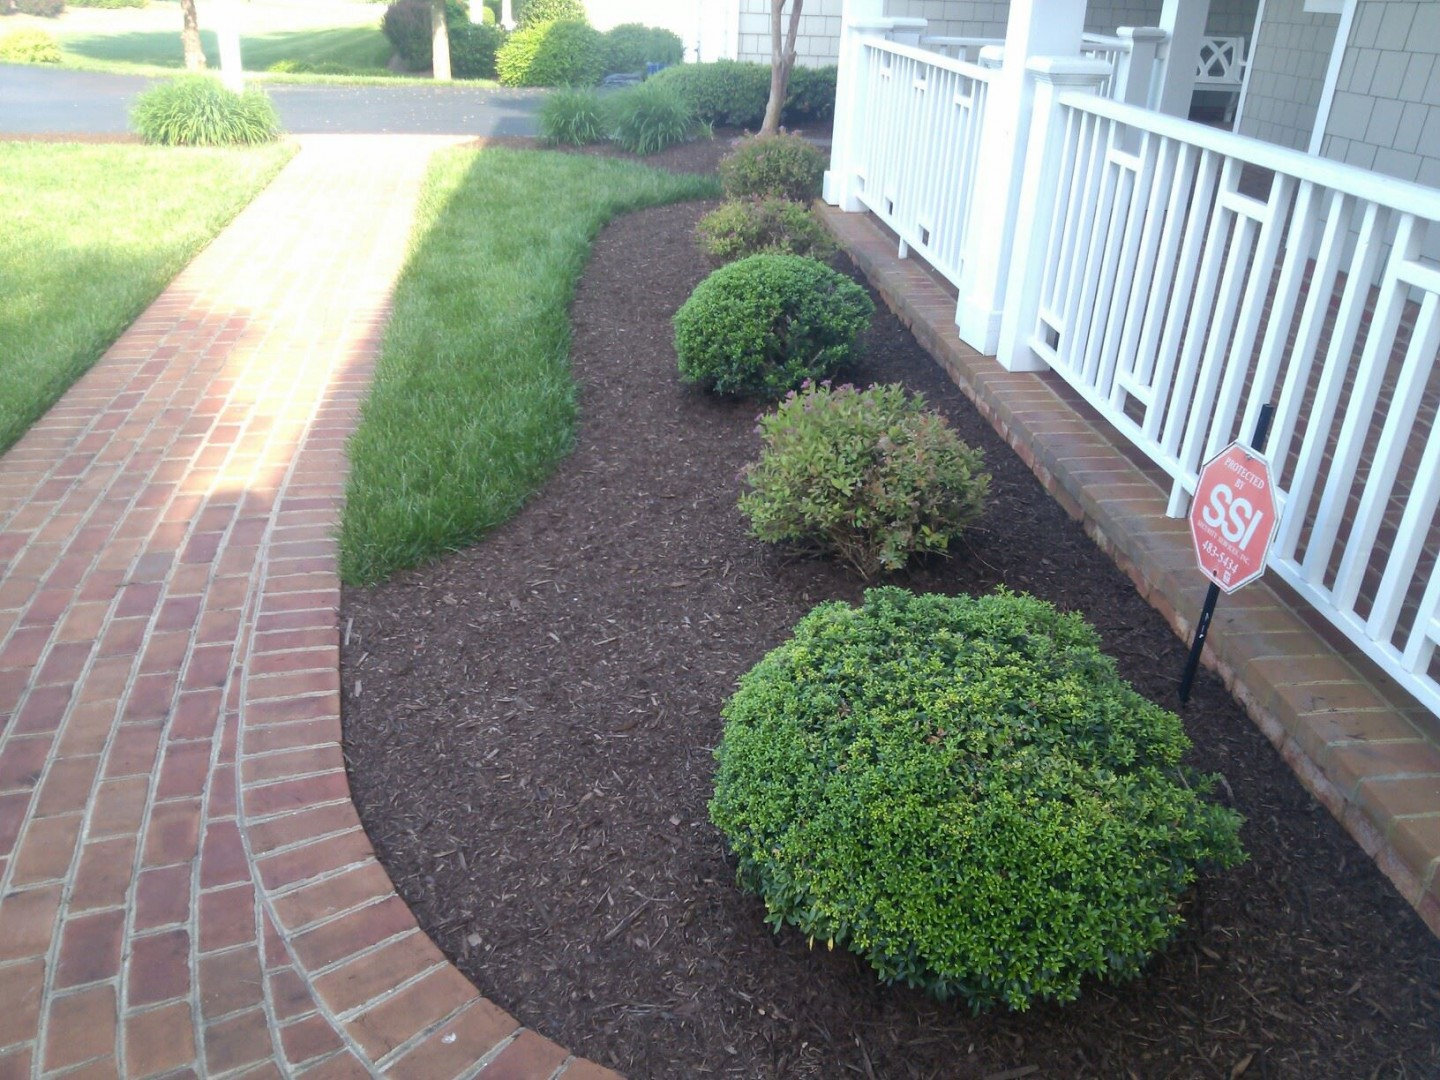 r-and-d-residential-landscaping-patio-deck